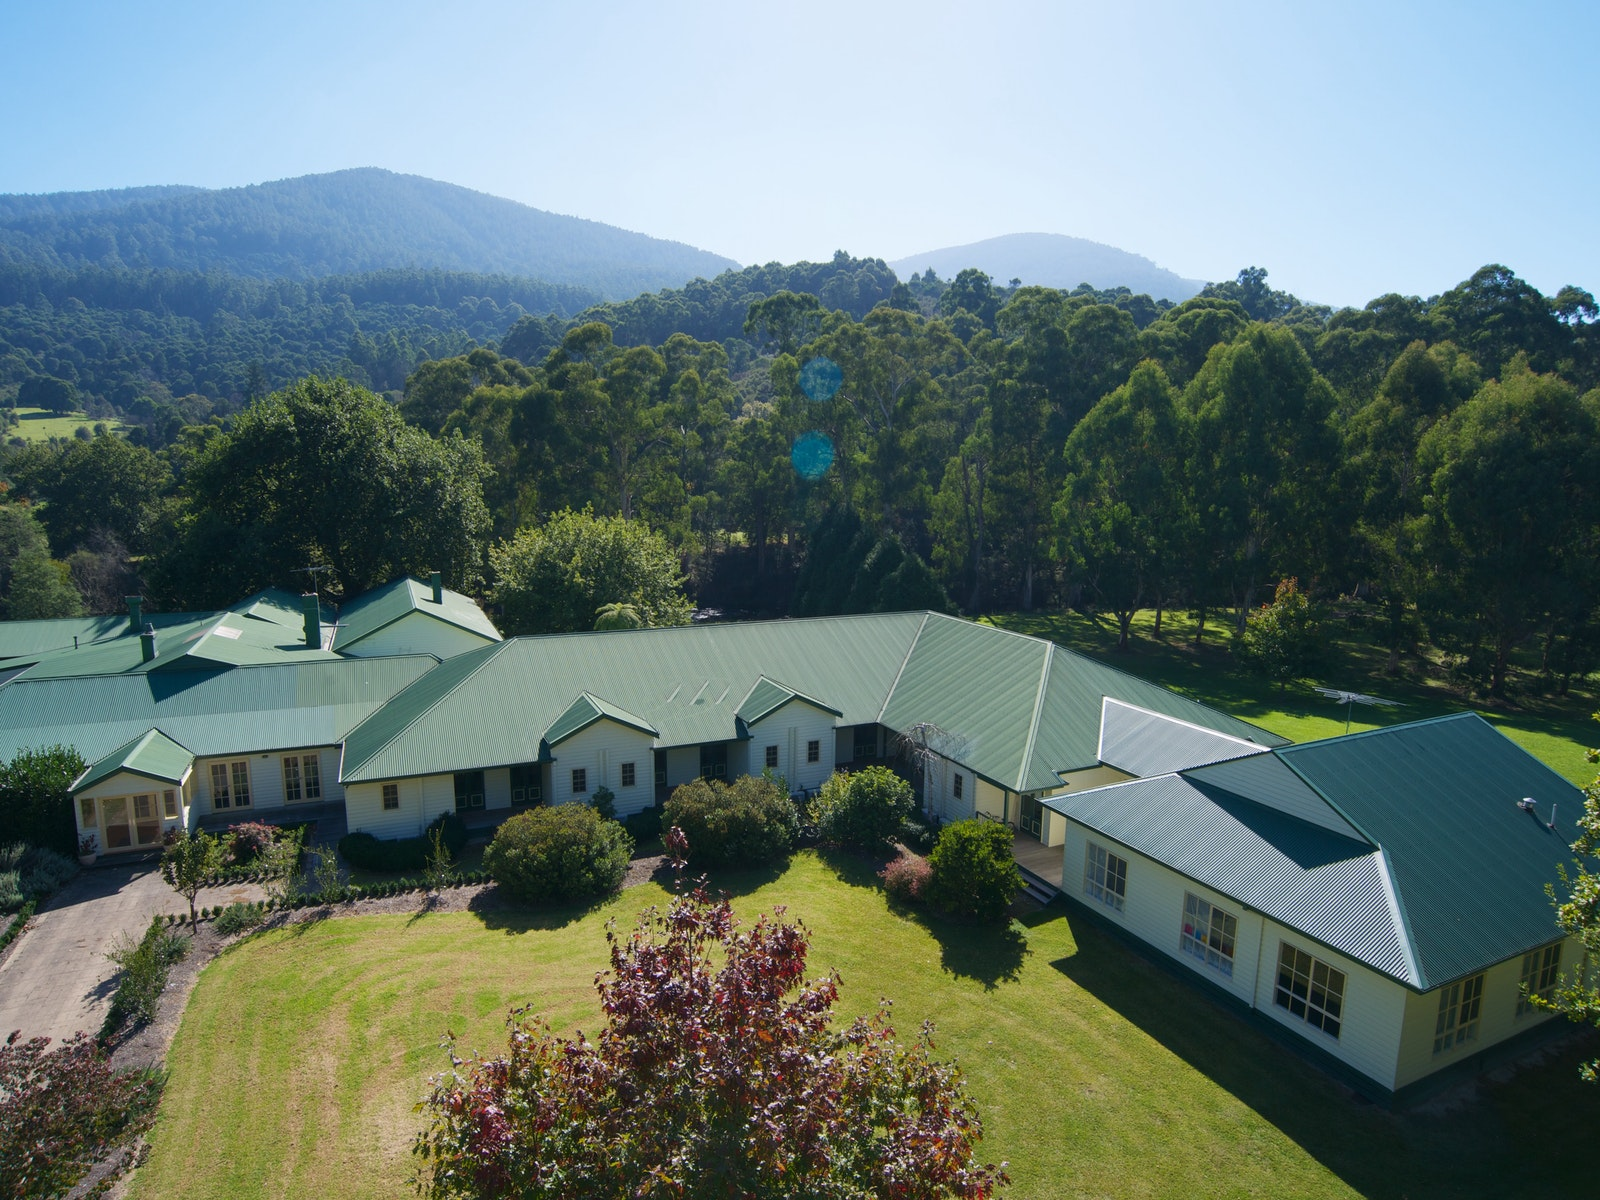 Boutique Hotel by the Yarra River in Warburton